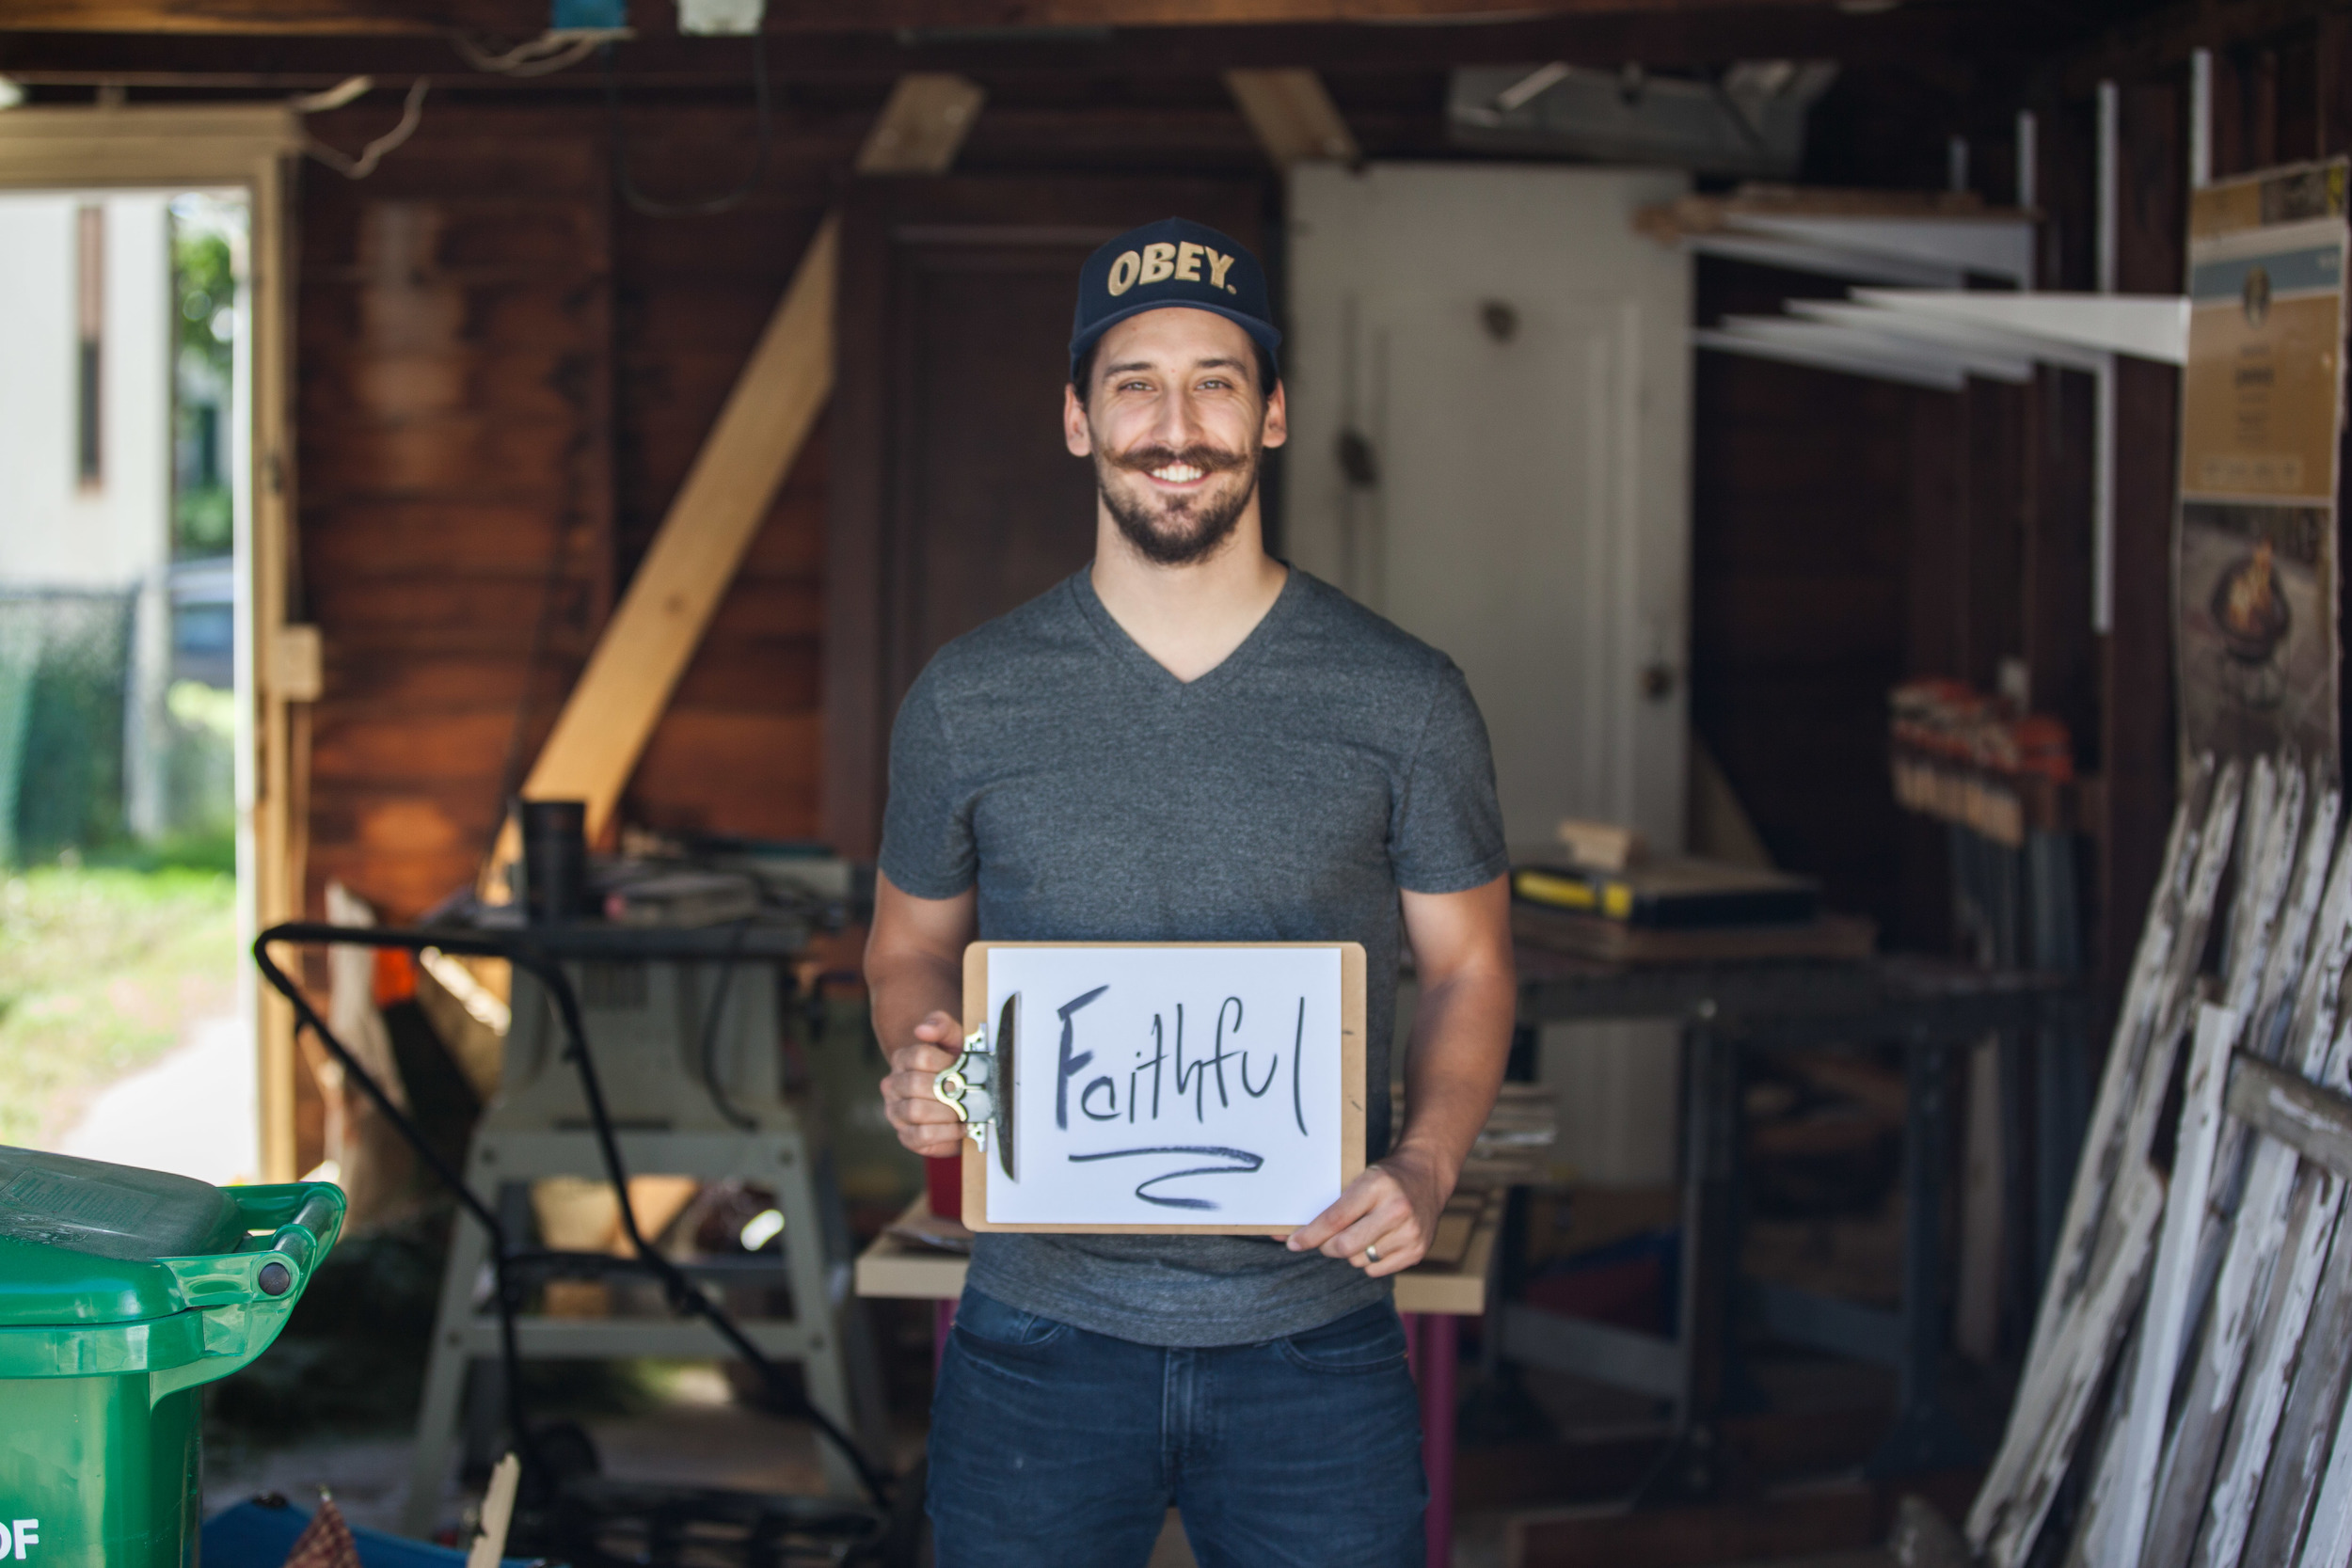 Man holding a sign saying faithful while standing in his garage.